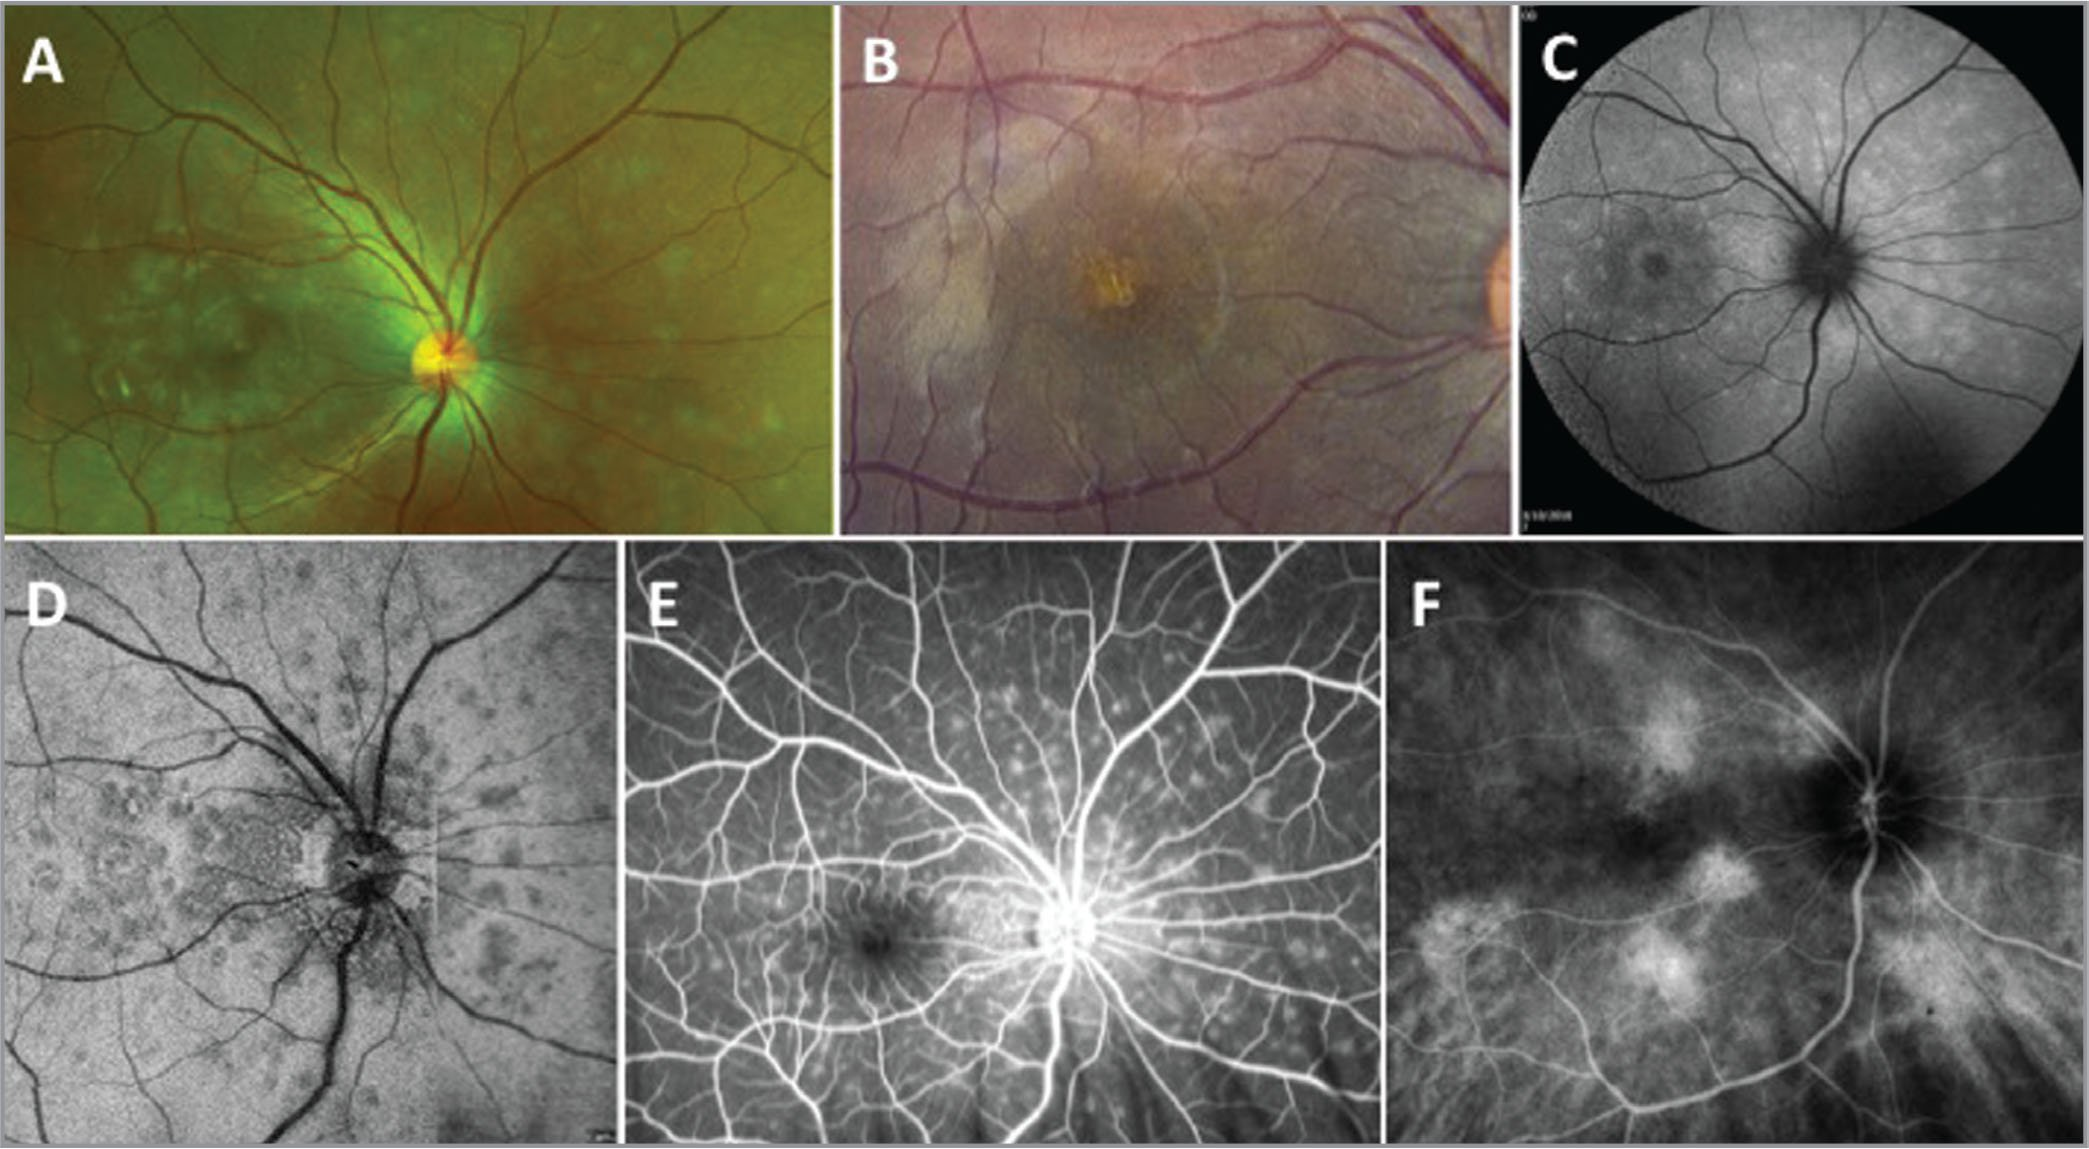 Imaging on initial presentation. (A) Color fundus images showing multiple white dots surrounding the macula and optic nerve. (B) Fundus image showing foveal hypopigmentation. (C) Fundus autofluorescence showing speckled hyperautofluorescent dots corresponding to the to the hyporeflective lesions noted on swept-source optical coherence tomography en face images of the ellipsoid zone (D). (D) En face outer retinal slab of the ellipsoid zone measure 20 μm to 40 μm above the retinal pigment epithelial layer. (E) Fluorescein angiography imaging demonstrating typical wreath-like hyperfluorescence around macula and optic nerve. (F) Indocyanine green angiography (ICGA) showing multiple areas of choroidal hyperpermeability but no hypofluorescent foci. Aside from ICGA, all of these images were consistent with a presentation of multiple evanescent white dot syndrome.